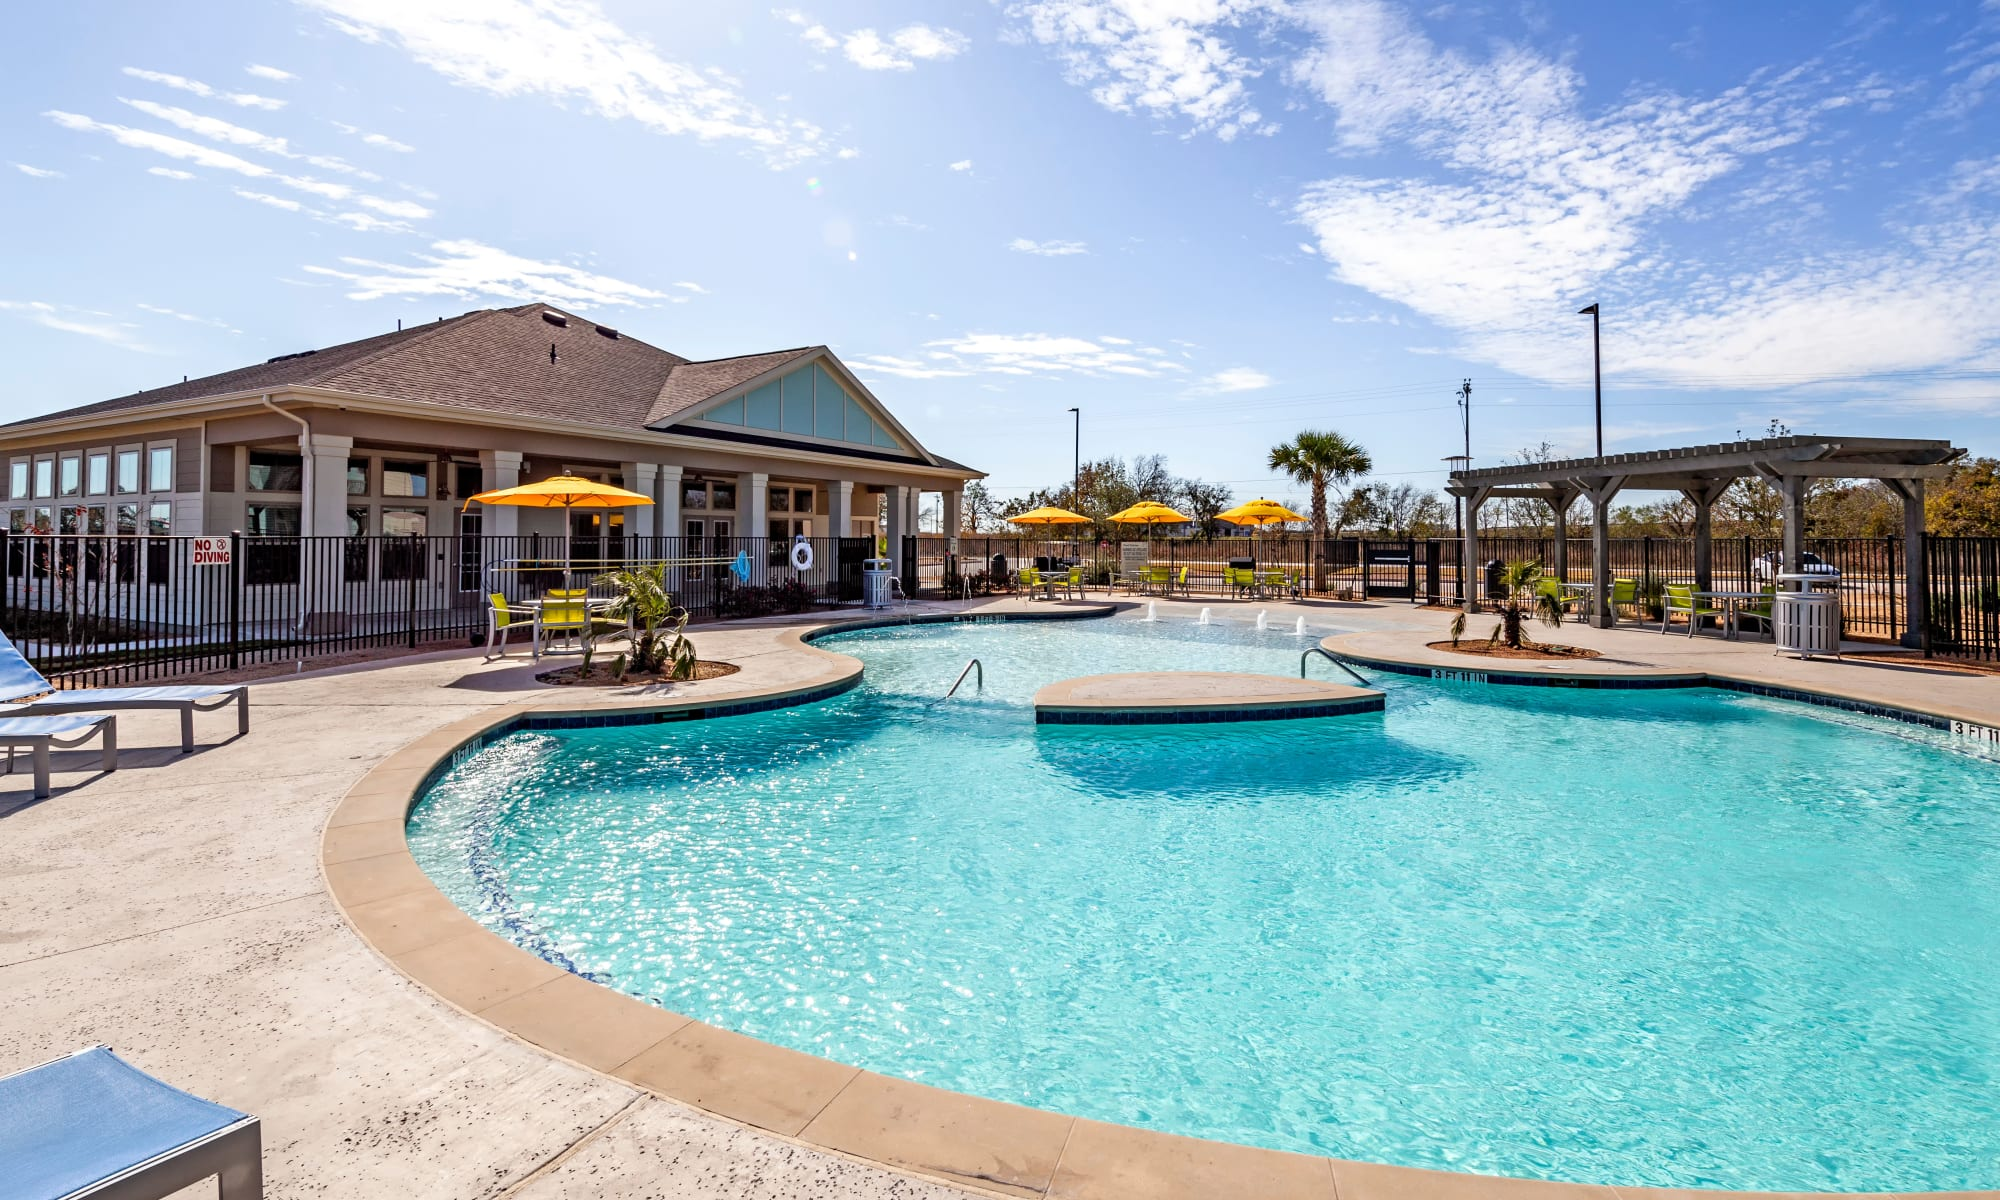 Apartments at The Stanton in Lockhart, Texas